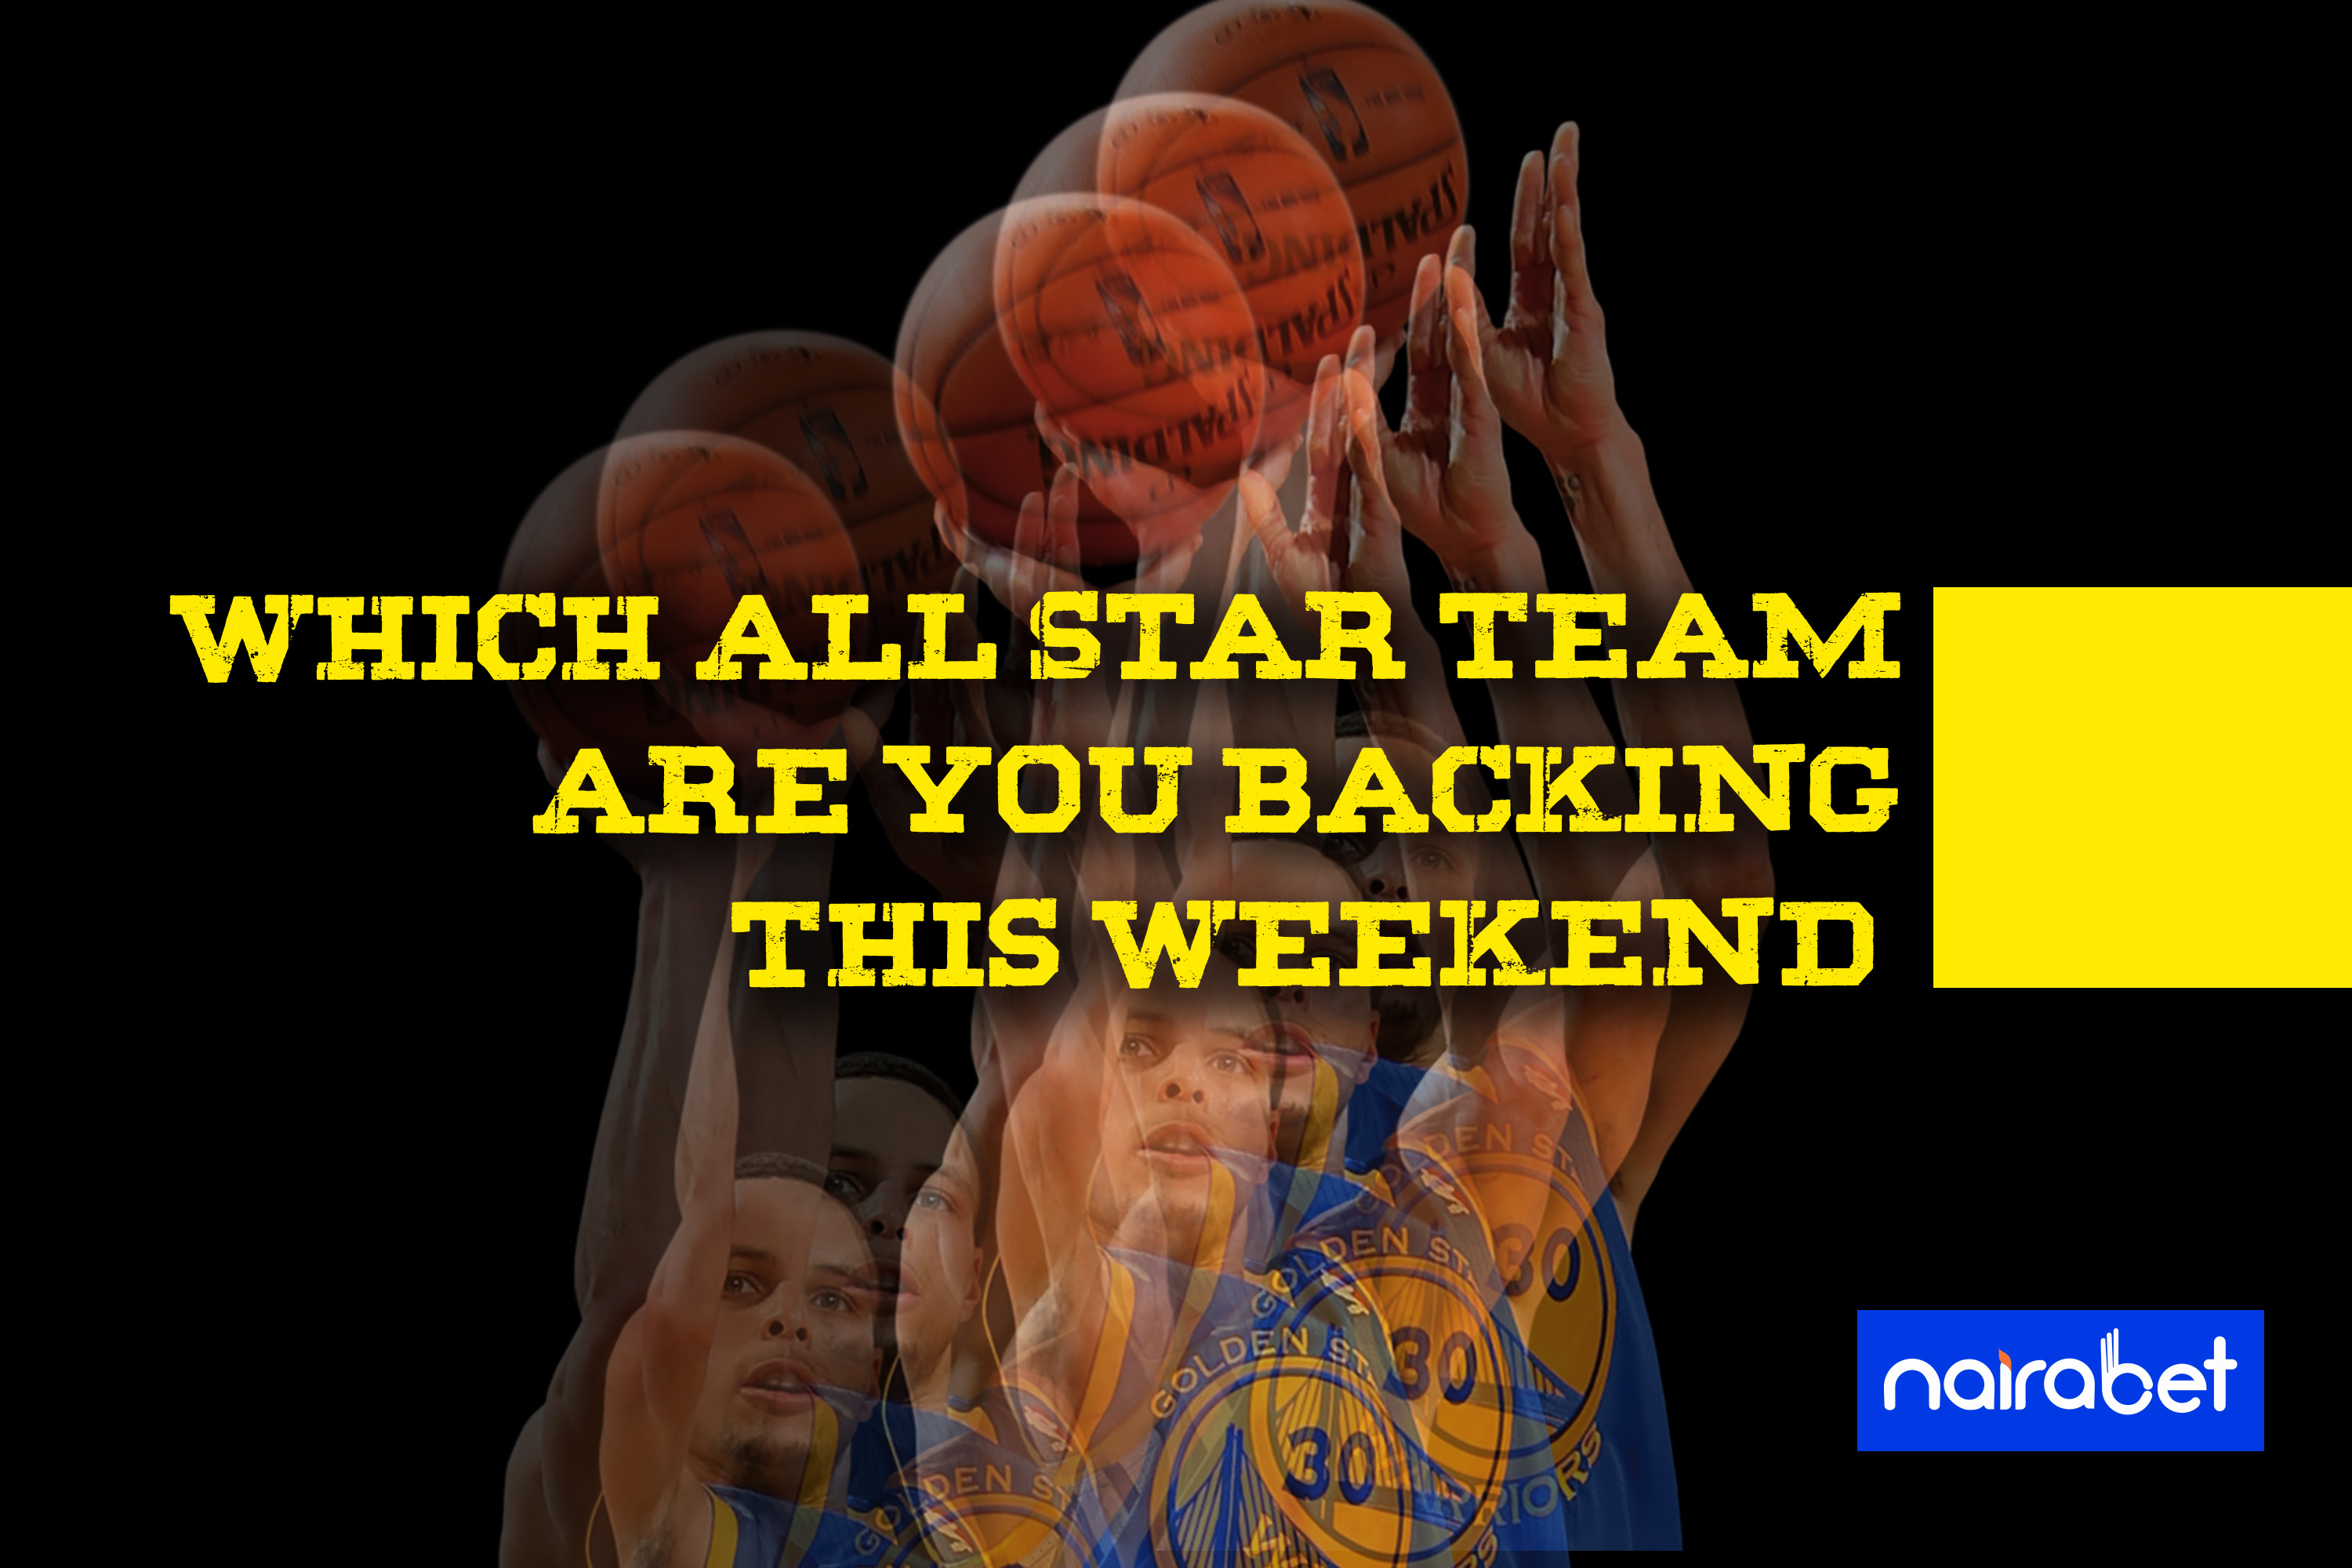 all star team backing weekend